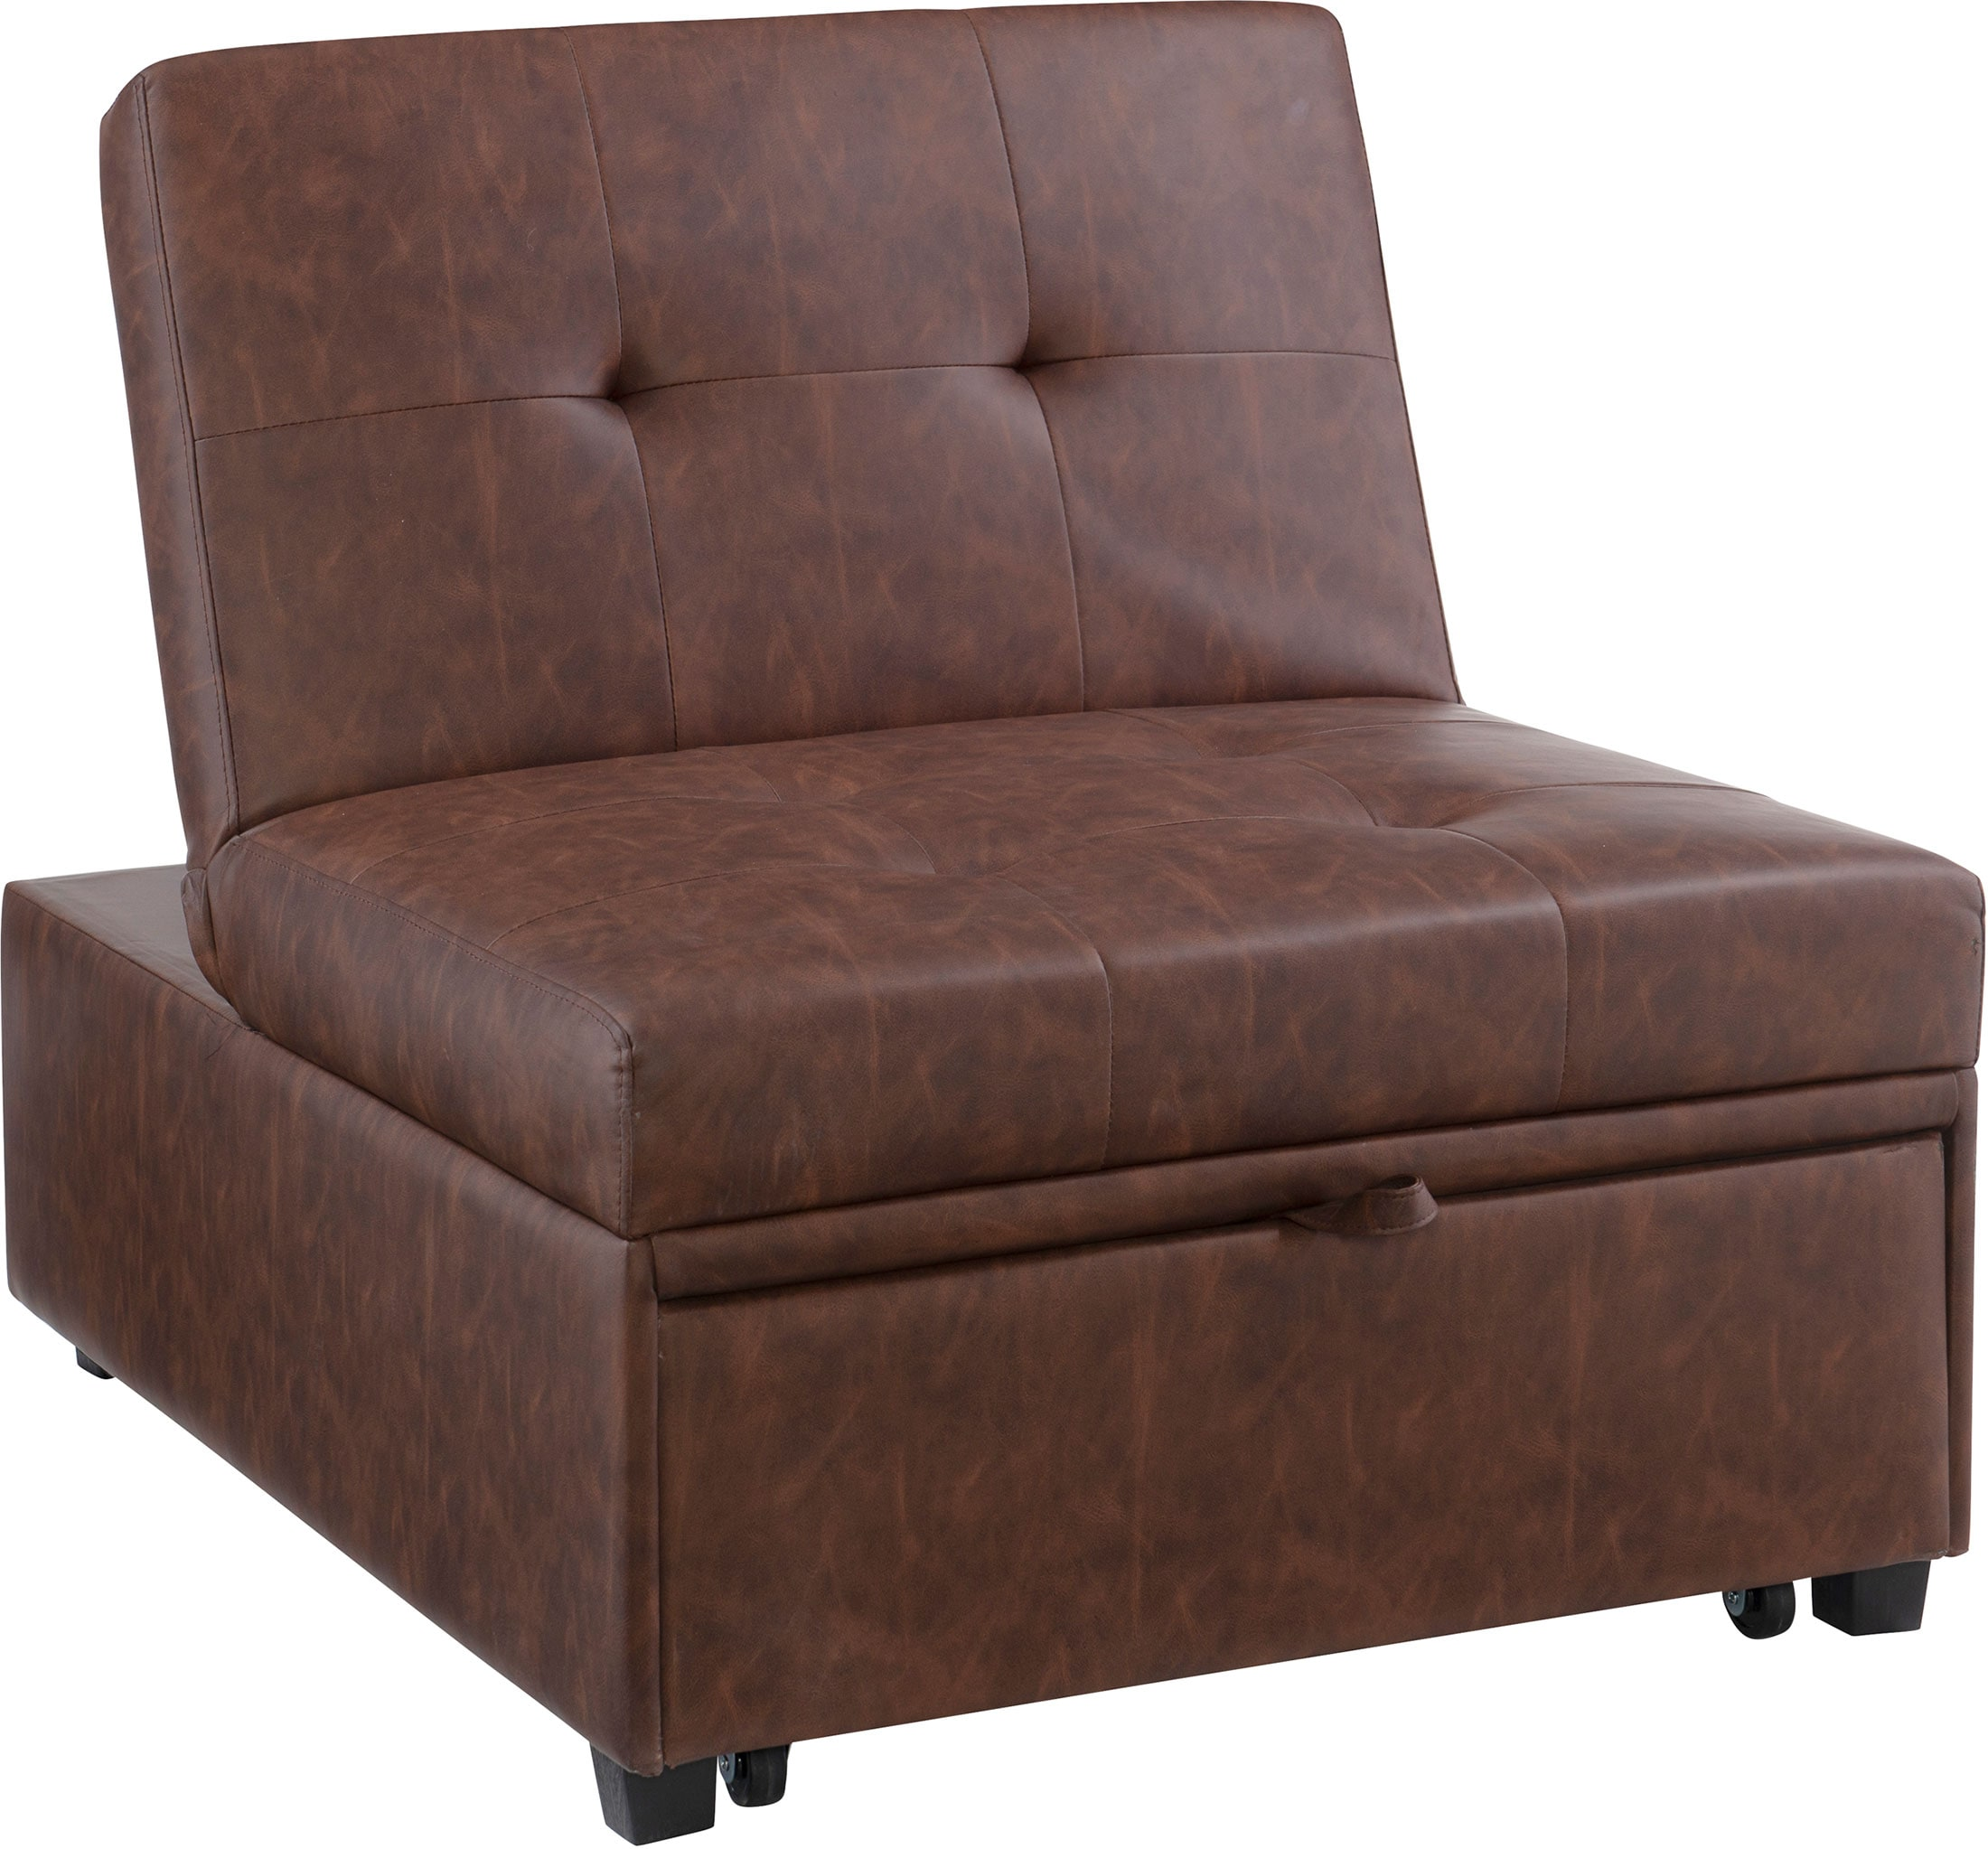 Accent and Occasional Furniture - Riley Dozer Bed